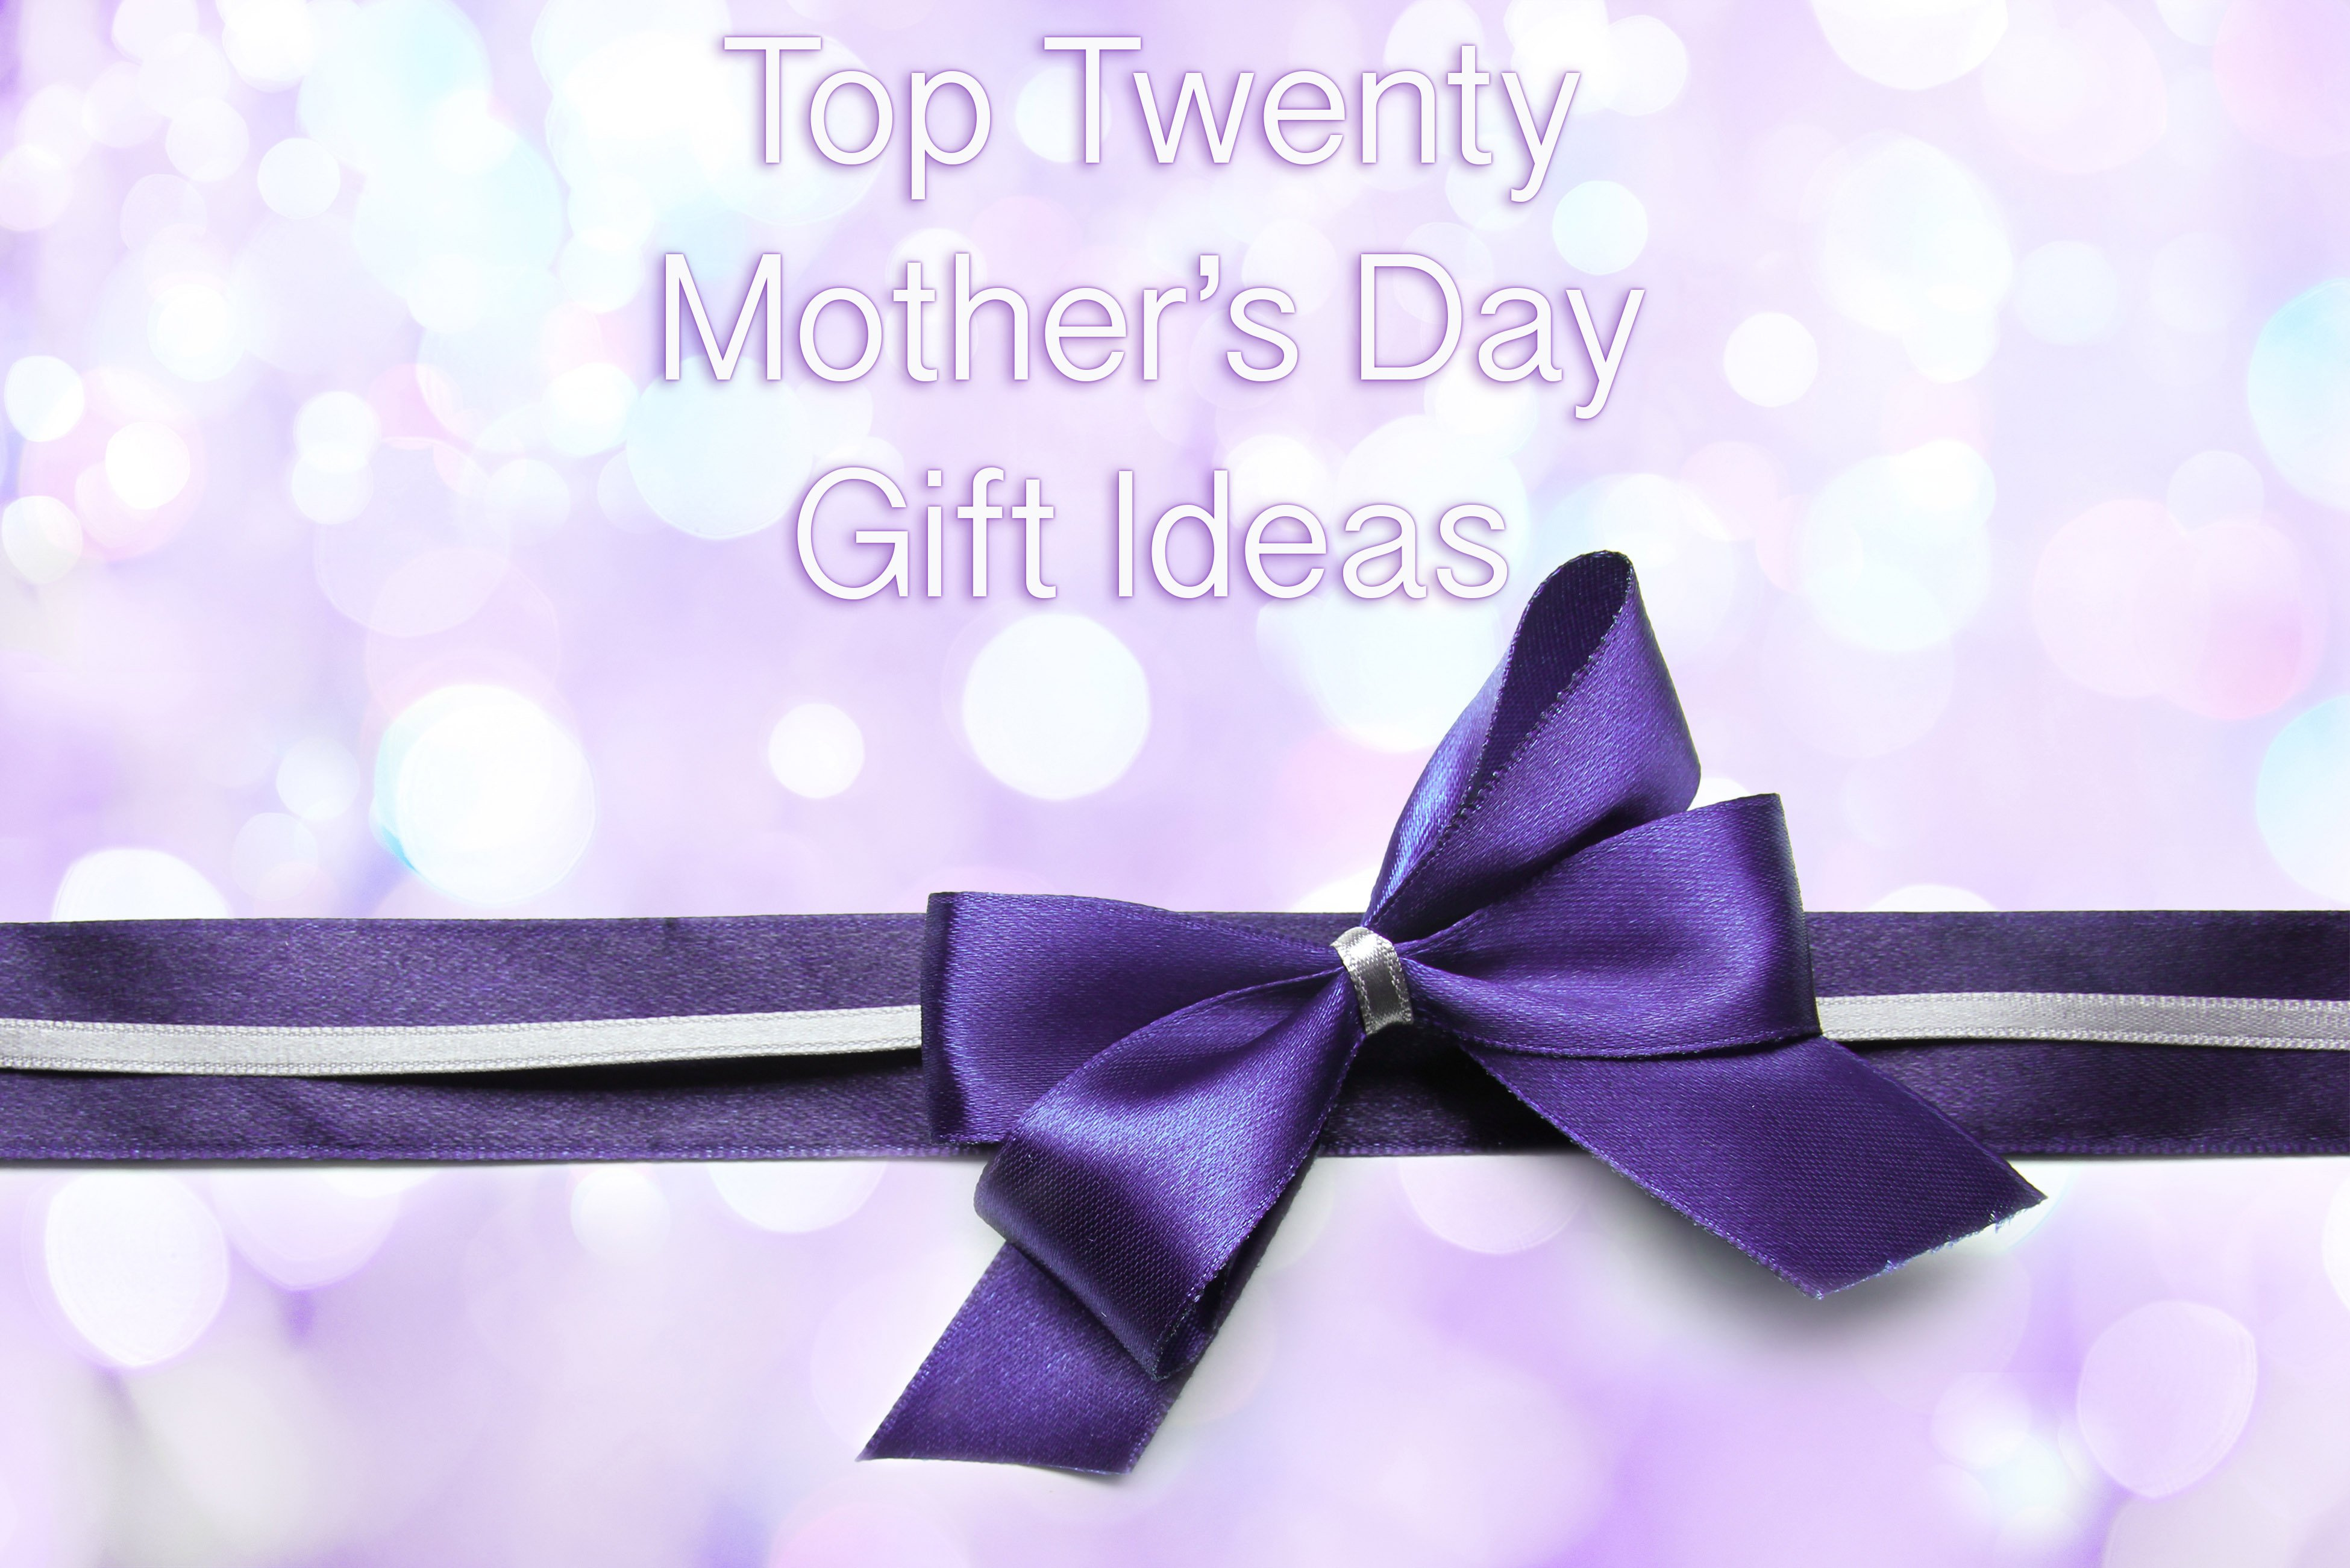 Top Twenty Mother's Day Gift Ideas